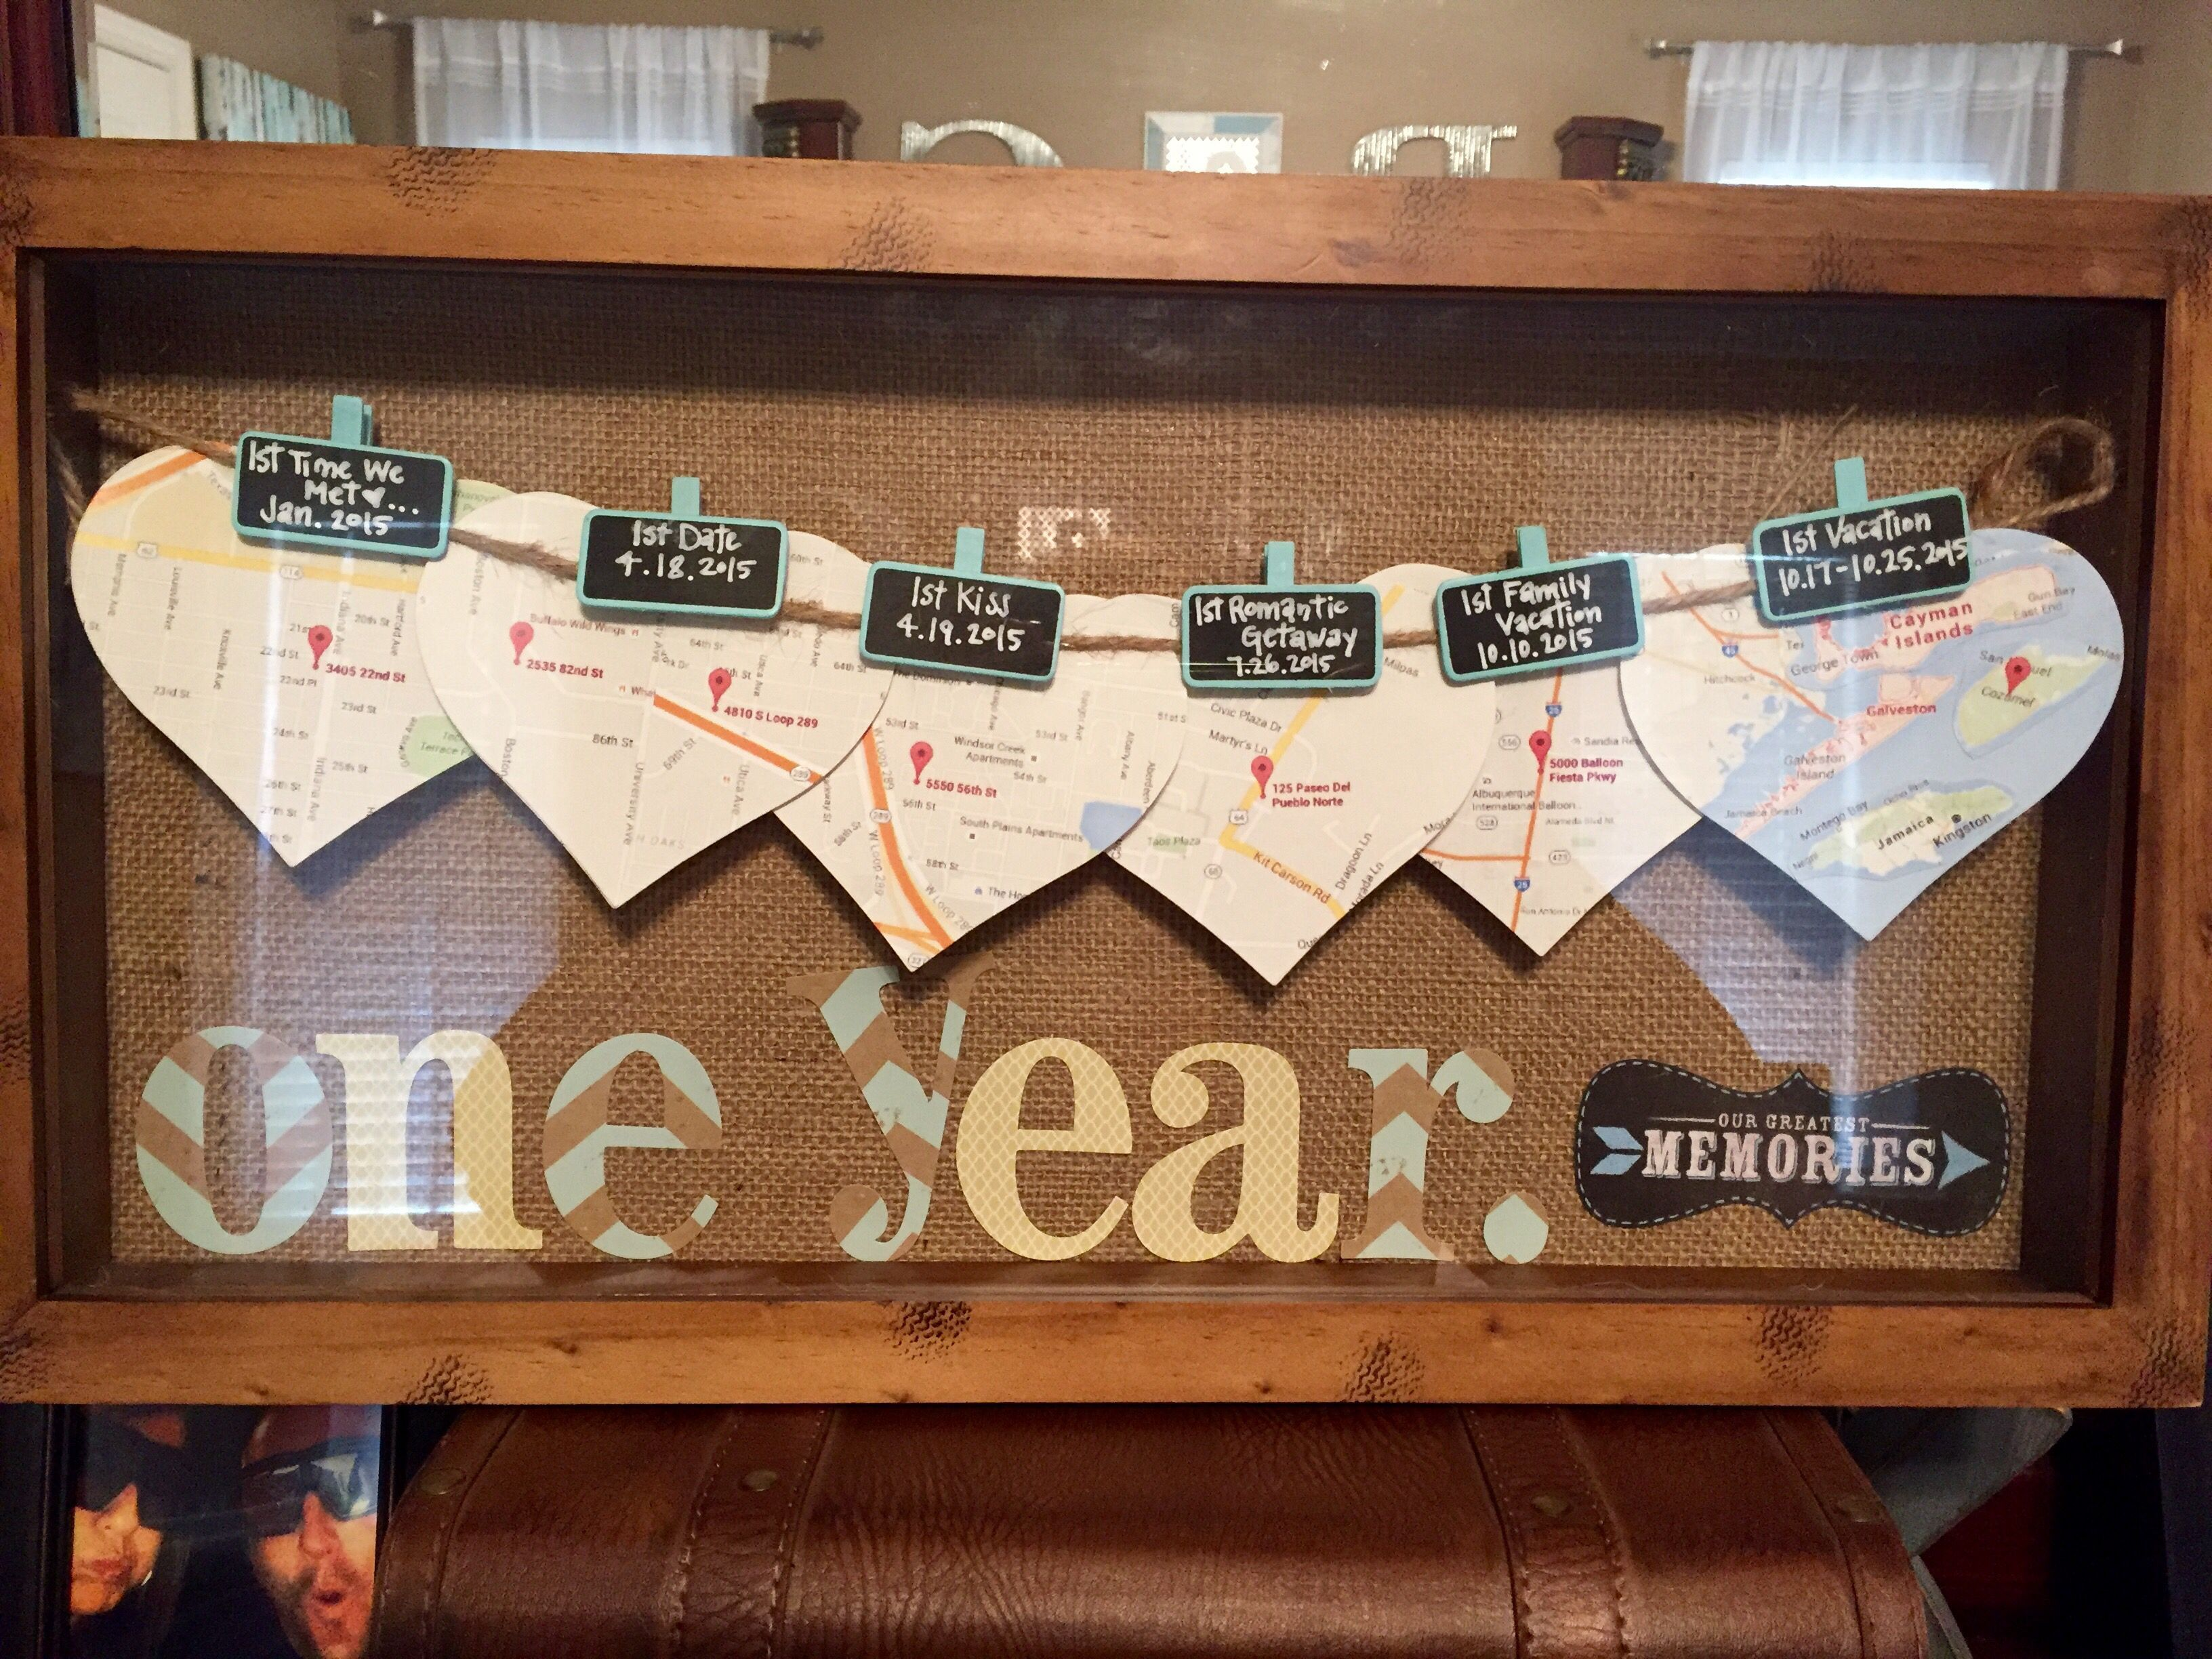 You Can Pick One Of These Anniversary Gifts To Celebrate The Special Day Anniversar 1 Year Anniversary Gifts Anniversary Scrapbook Anniversary Ideas For Him